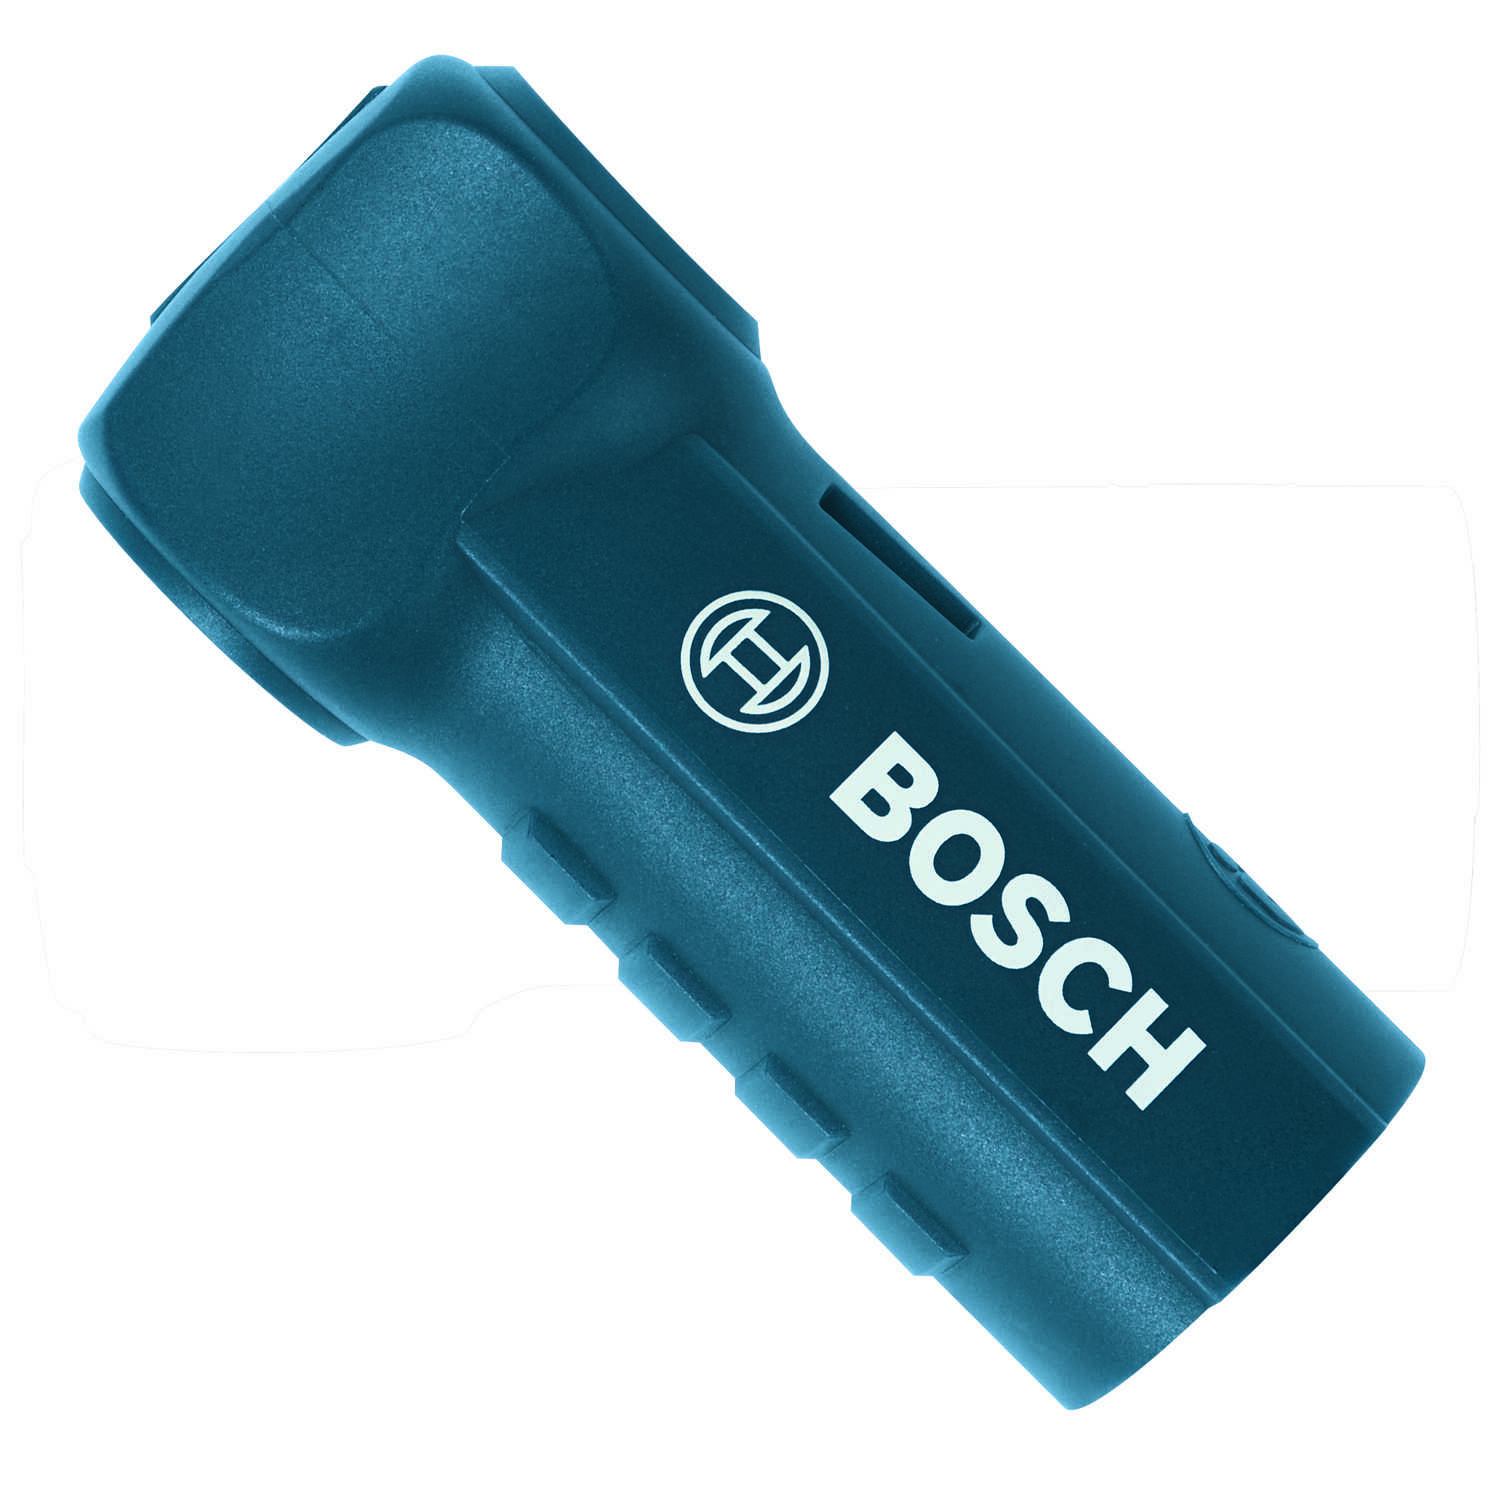 Bosch  Speed Clean  4.5 in. L x 1.37 in. Dia. Hose Adapter  Teal  1 pc.